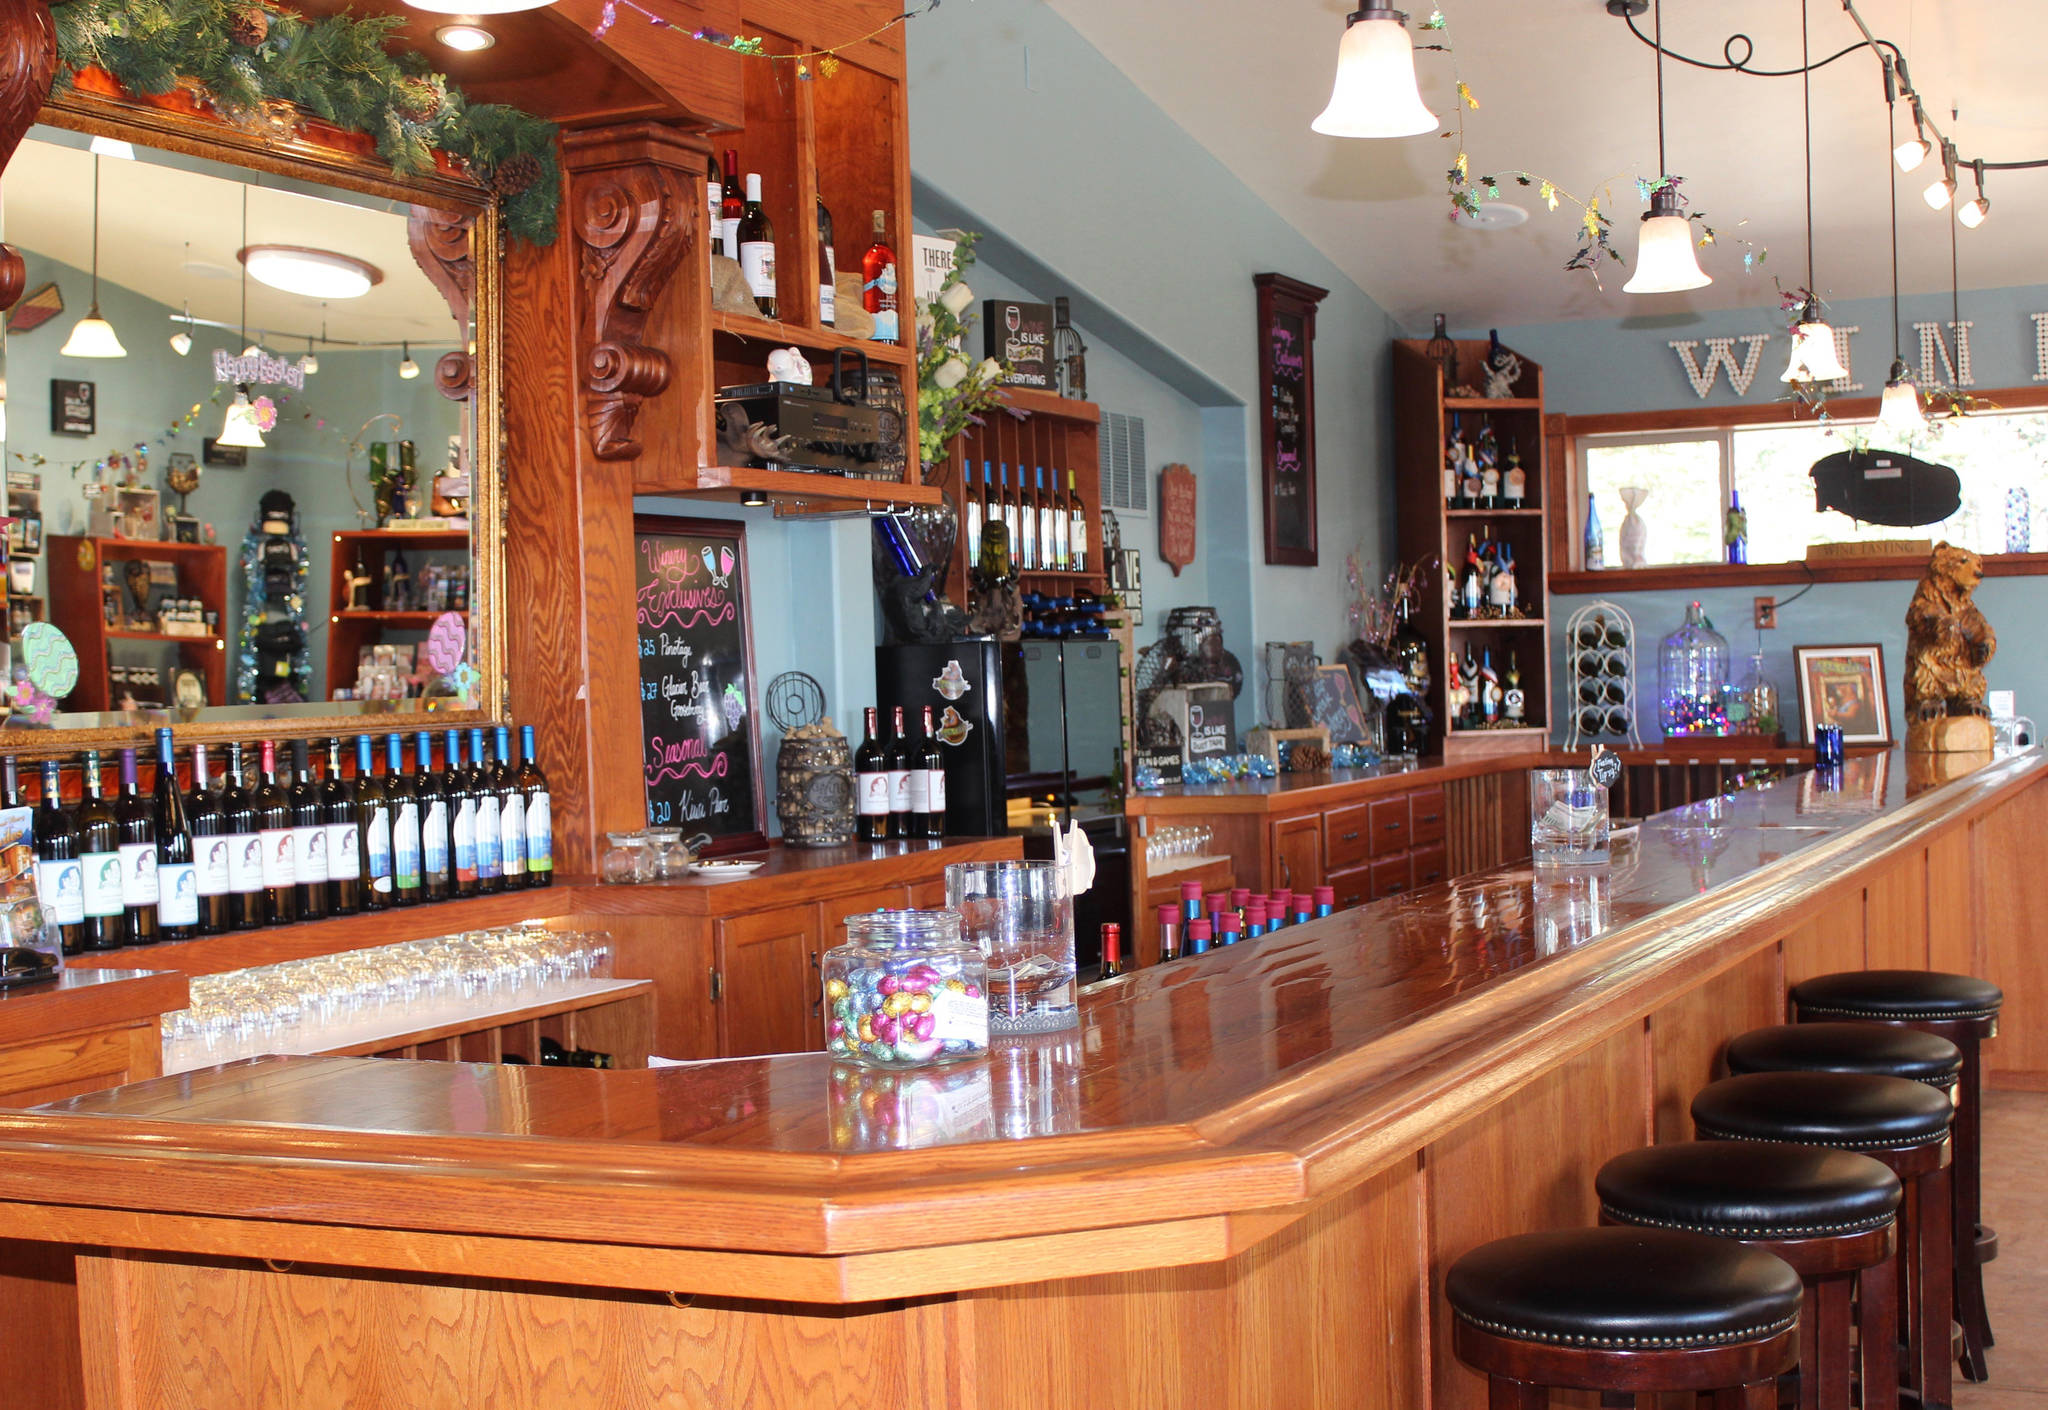 Bear Creek Winery's tasting room offers both of the winery's brands, as seen here in this photo taken April 17, 2019. The original Bear Creek brand has nine wines on the tasting list year-round and five seasonal wines. Five different wines are under the Glacier Bear brand, made strictly from Alaskan-grown berries and fruits at its location in Kachemak City, Alaska. (Photo by McKibben Jackinsky)